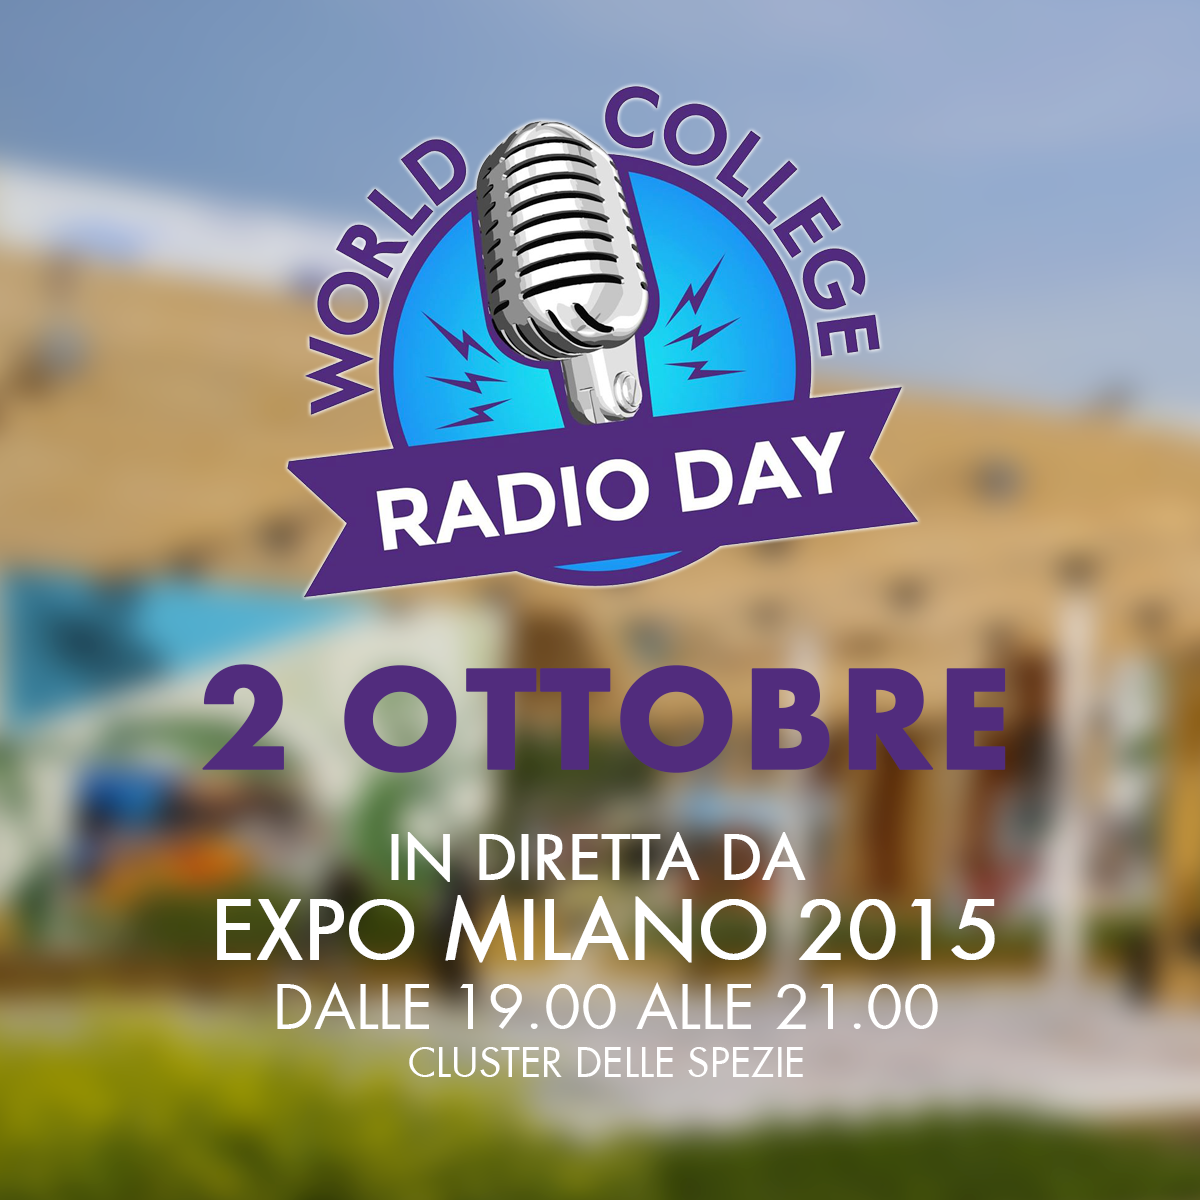 Tonight from 7pm to 9pm #ColombiaPavilion joins the #WCRD15 live from #Expo2015 http://t.co/Lc0N7zgszw http://t.co/QtM8nH9FsN